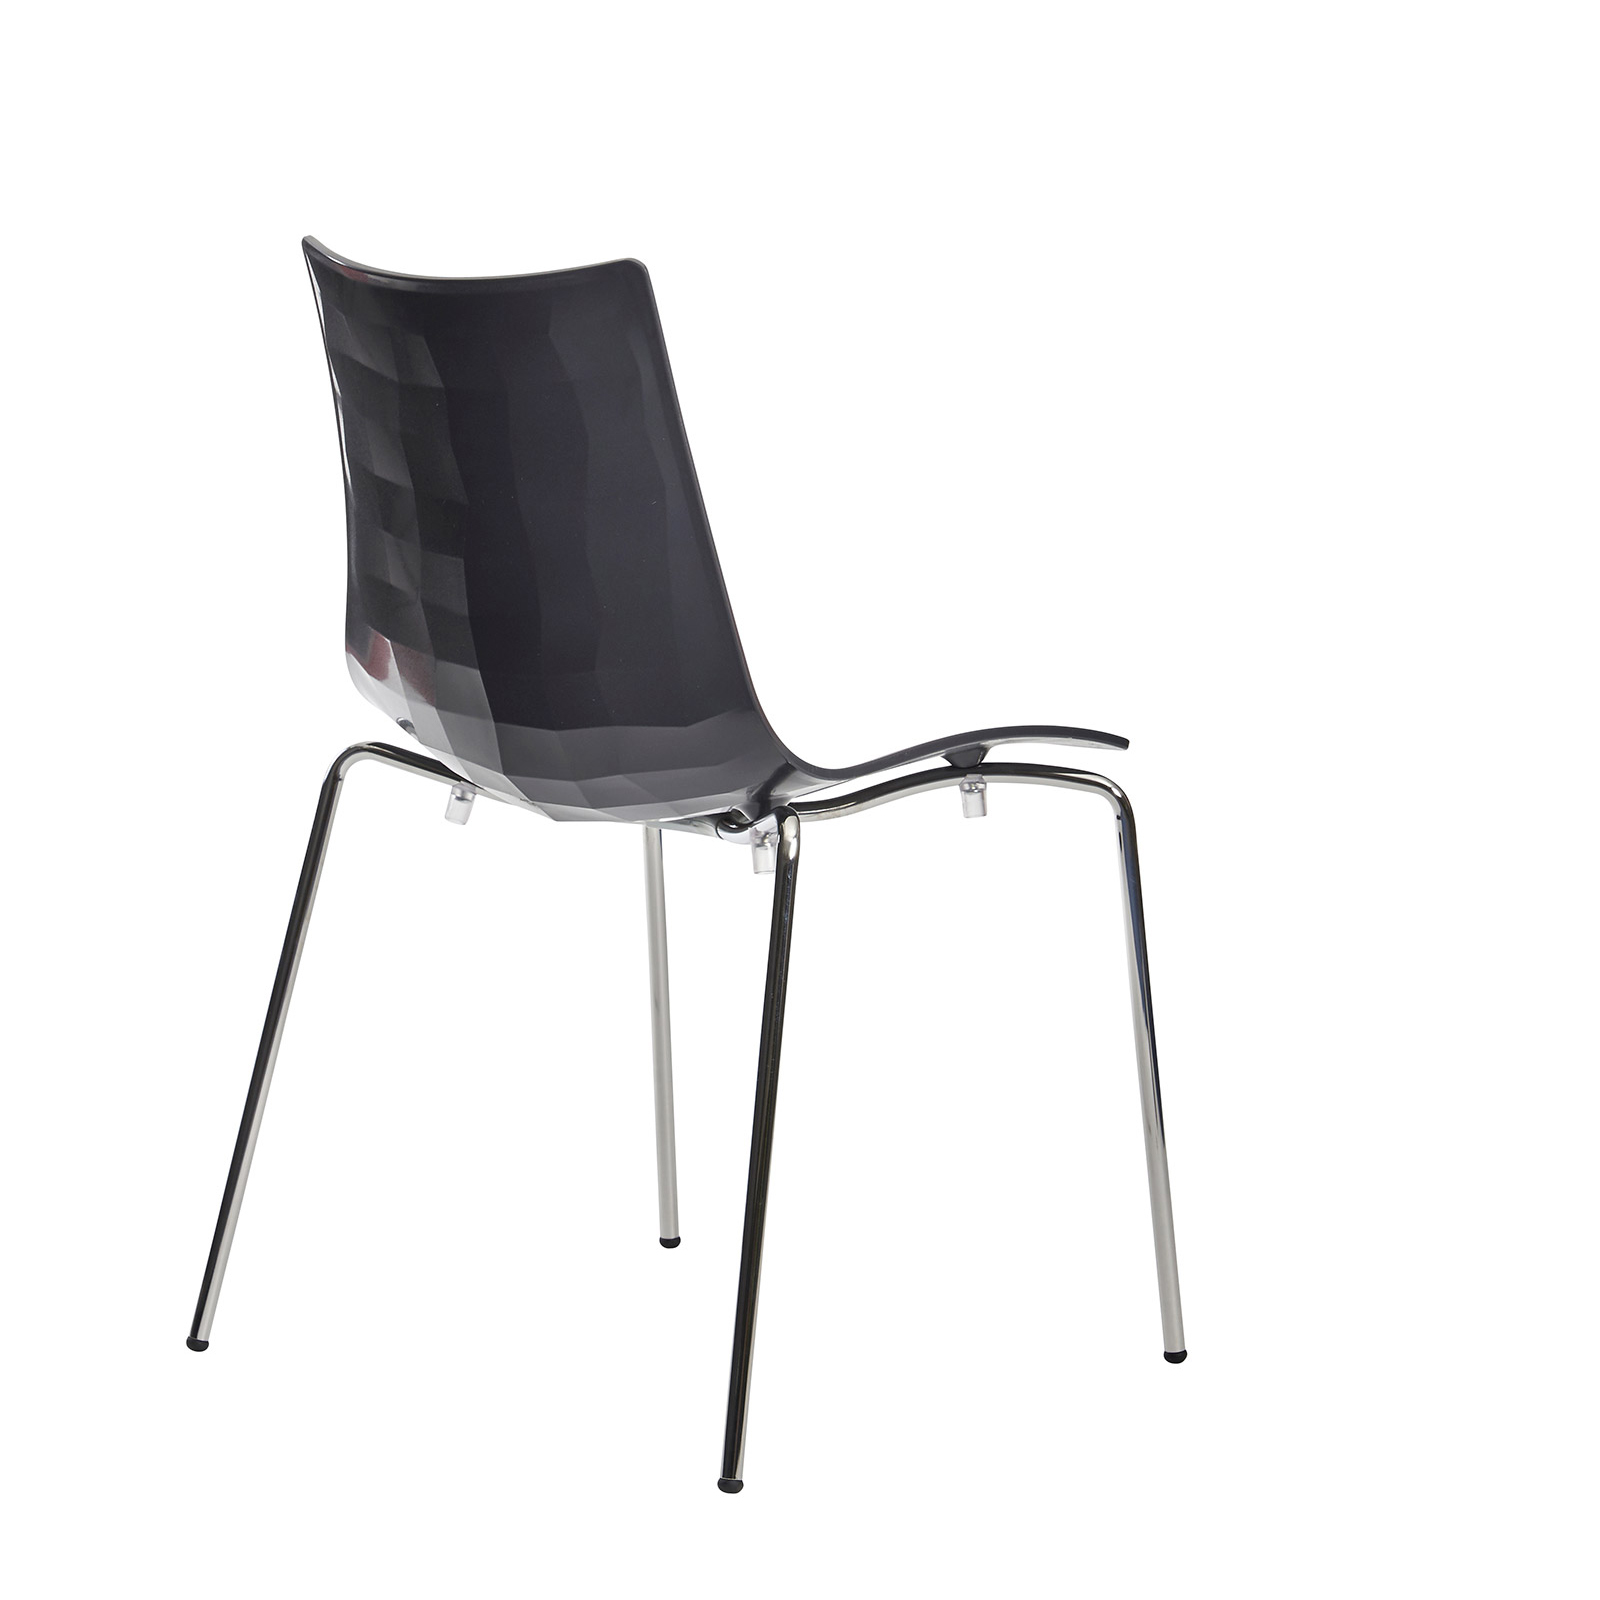 Gecko shell dining stacking chair with chrome legs - anthracite